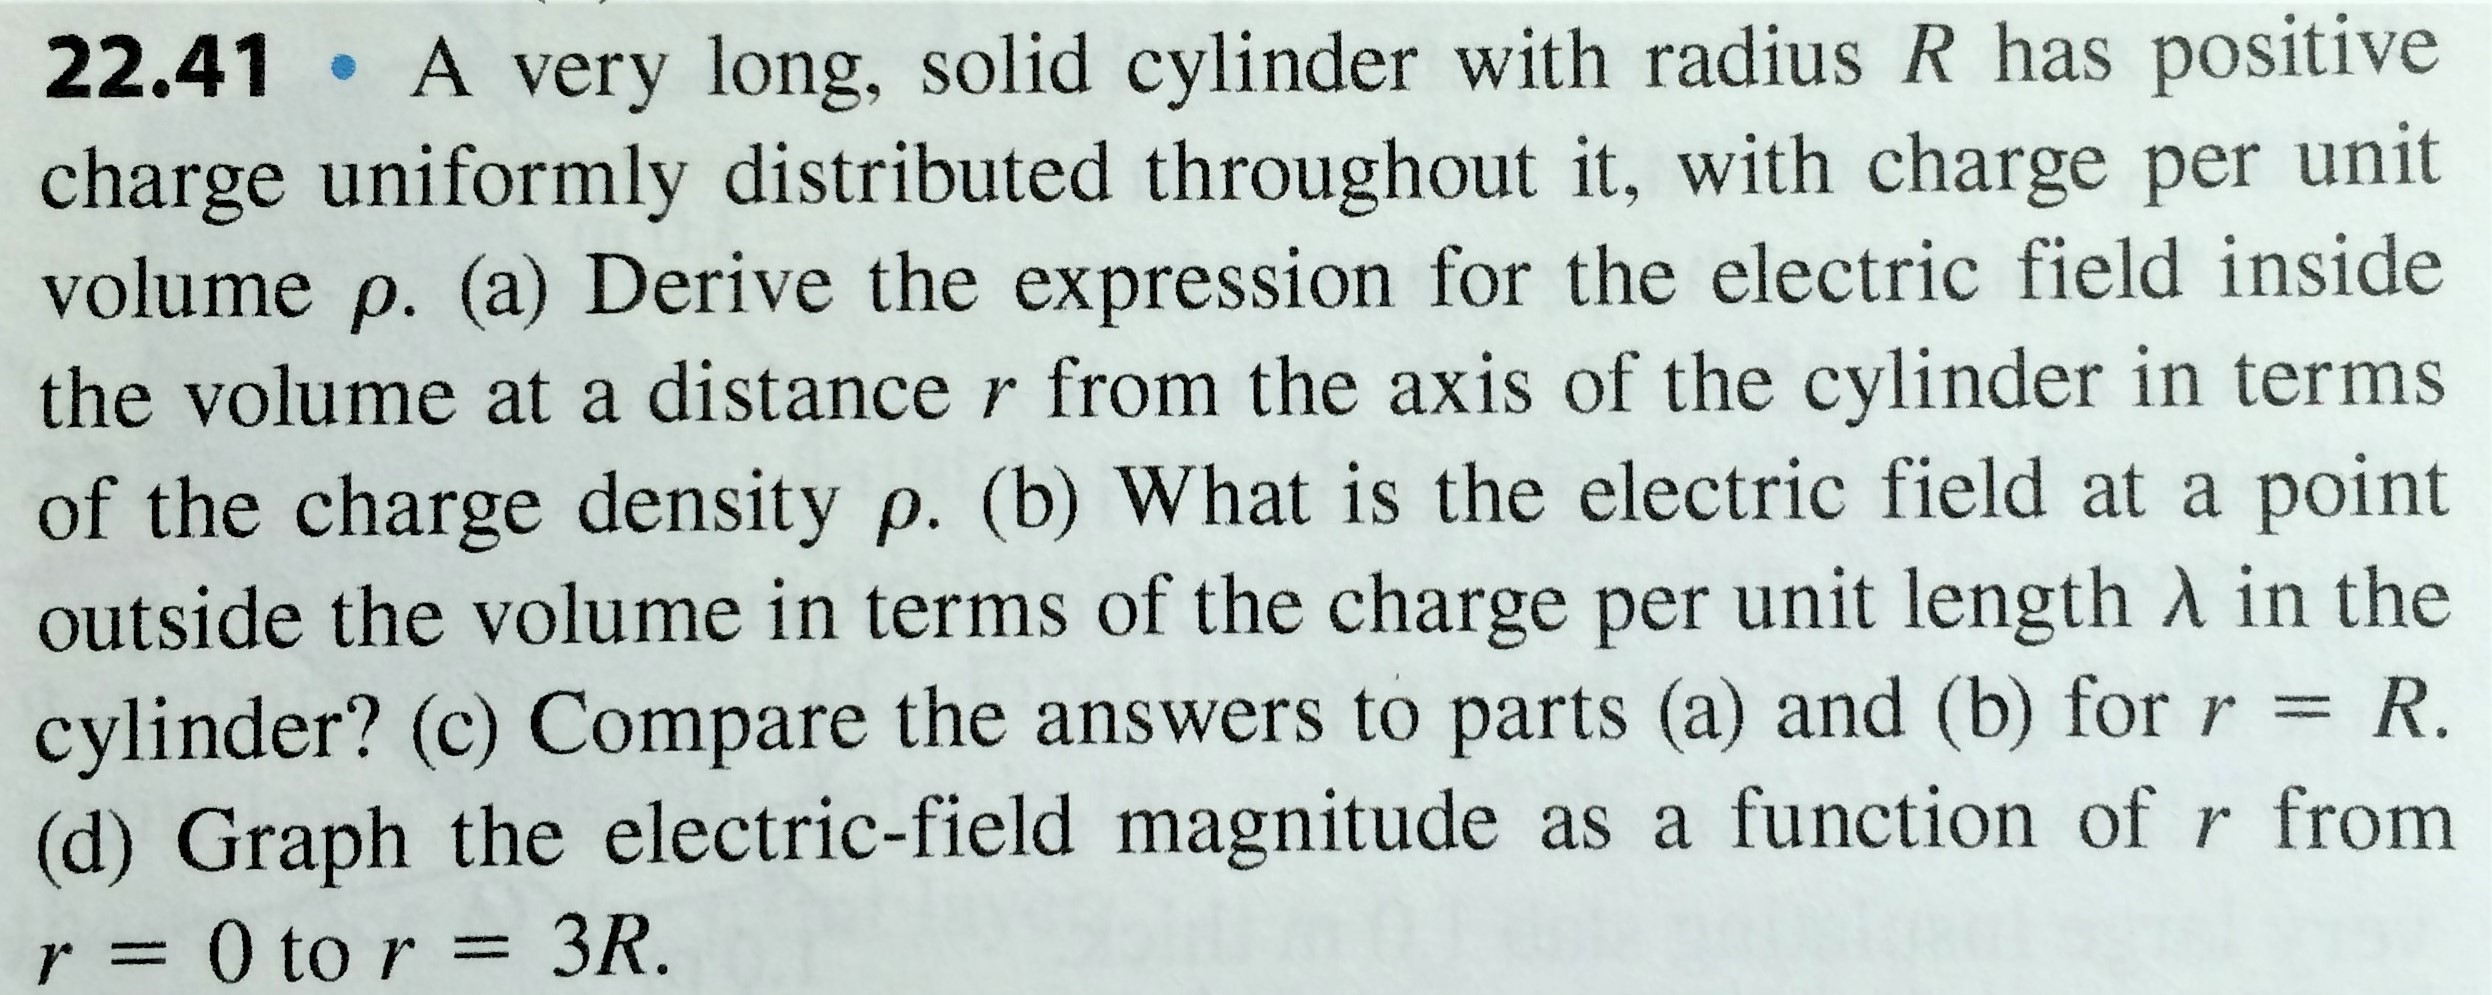 22.41 A very long, solid cylinder with radius R has positive charge uniformly distributed throughout it, with charge per unit volume p. (a) Derive the expression for the electric field inside the volume at a distance r from the axis of the cylinder in terms of the charge density p. (b) What is the electric field at a point outside the volume in terms of the charge per unit length A in the cylinder? (c) Compare the answers to parts (a) and (b) forr = R. (d) Graph the electric-field magnitude as a function of r from 3R. r= 0 to r =